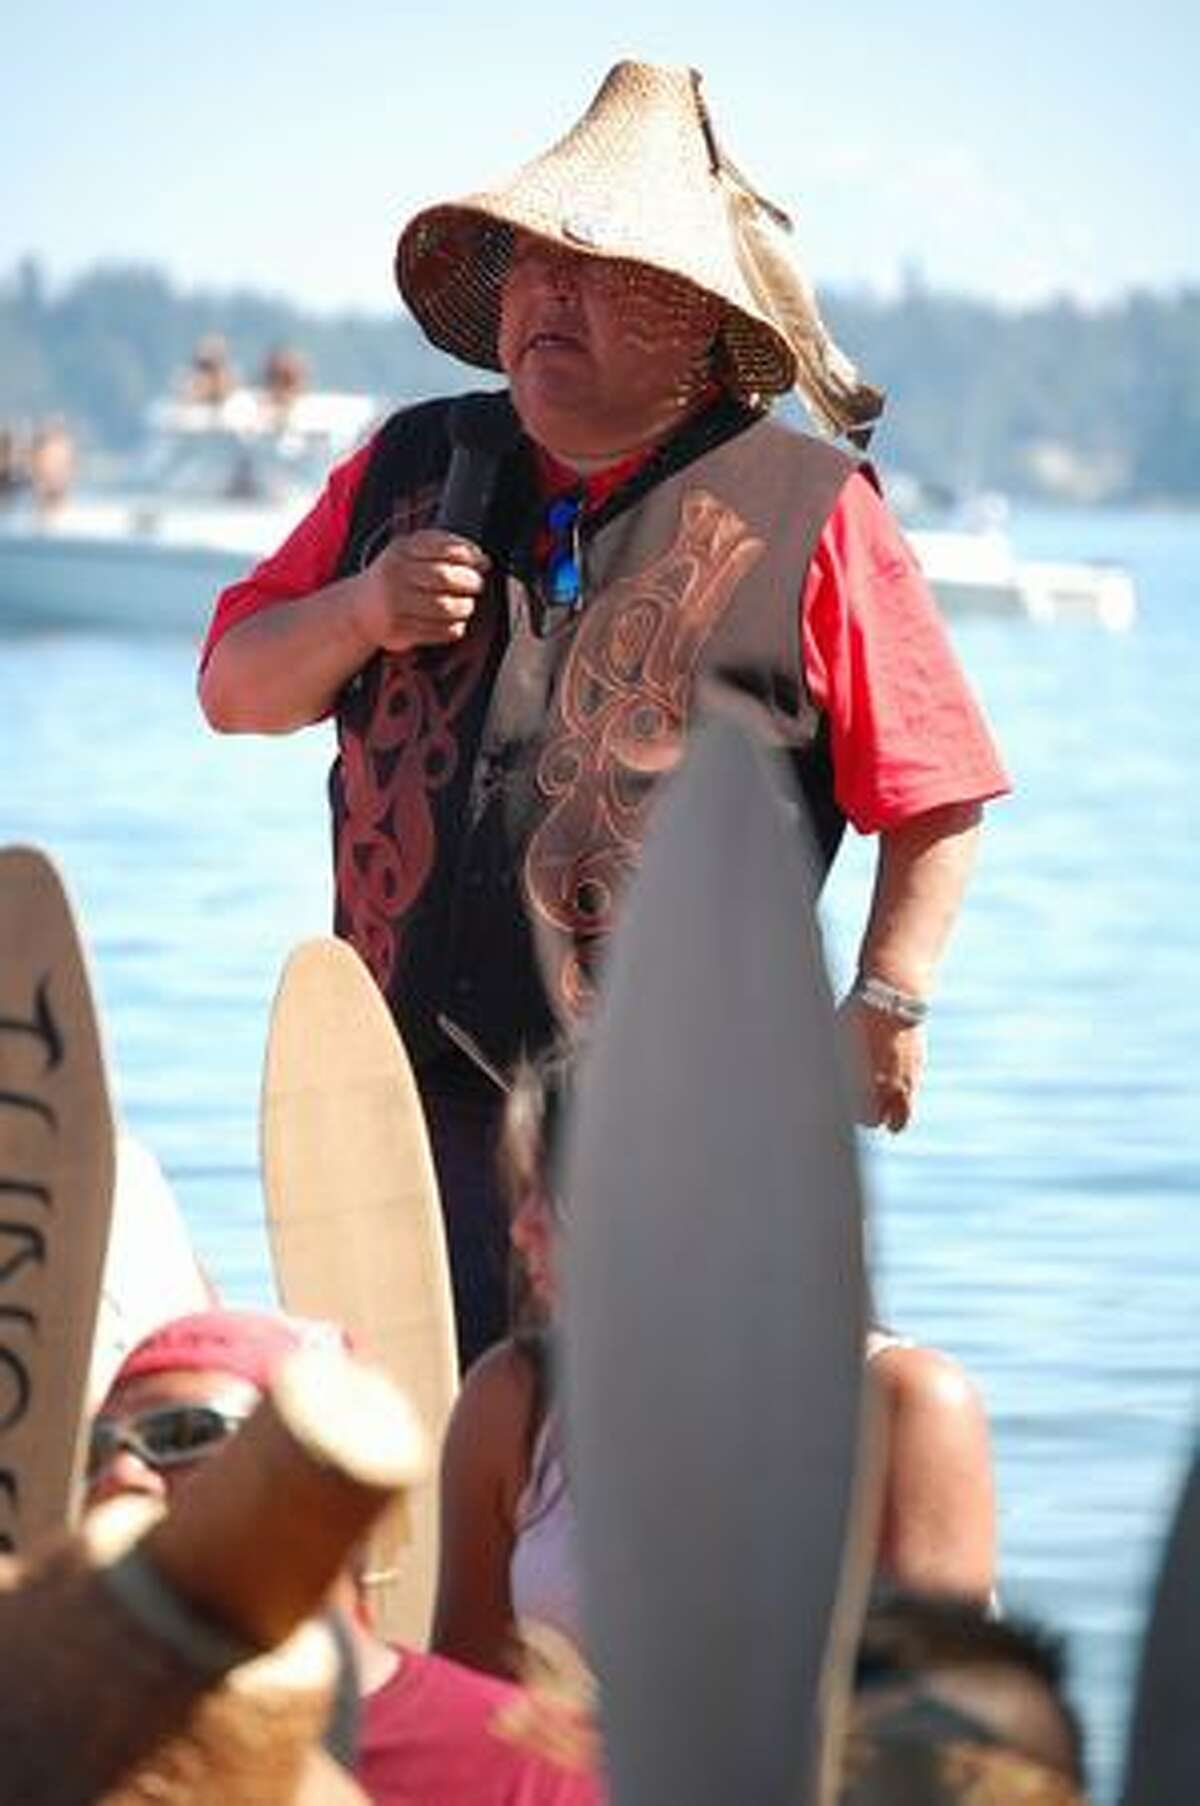 Following on ancient tradition, a canoe captain requests permission to come ashore from Suquamish leaders. Native American canoes from several Northwest tribes took part in the landing, the culmination of an days-long event known as